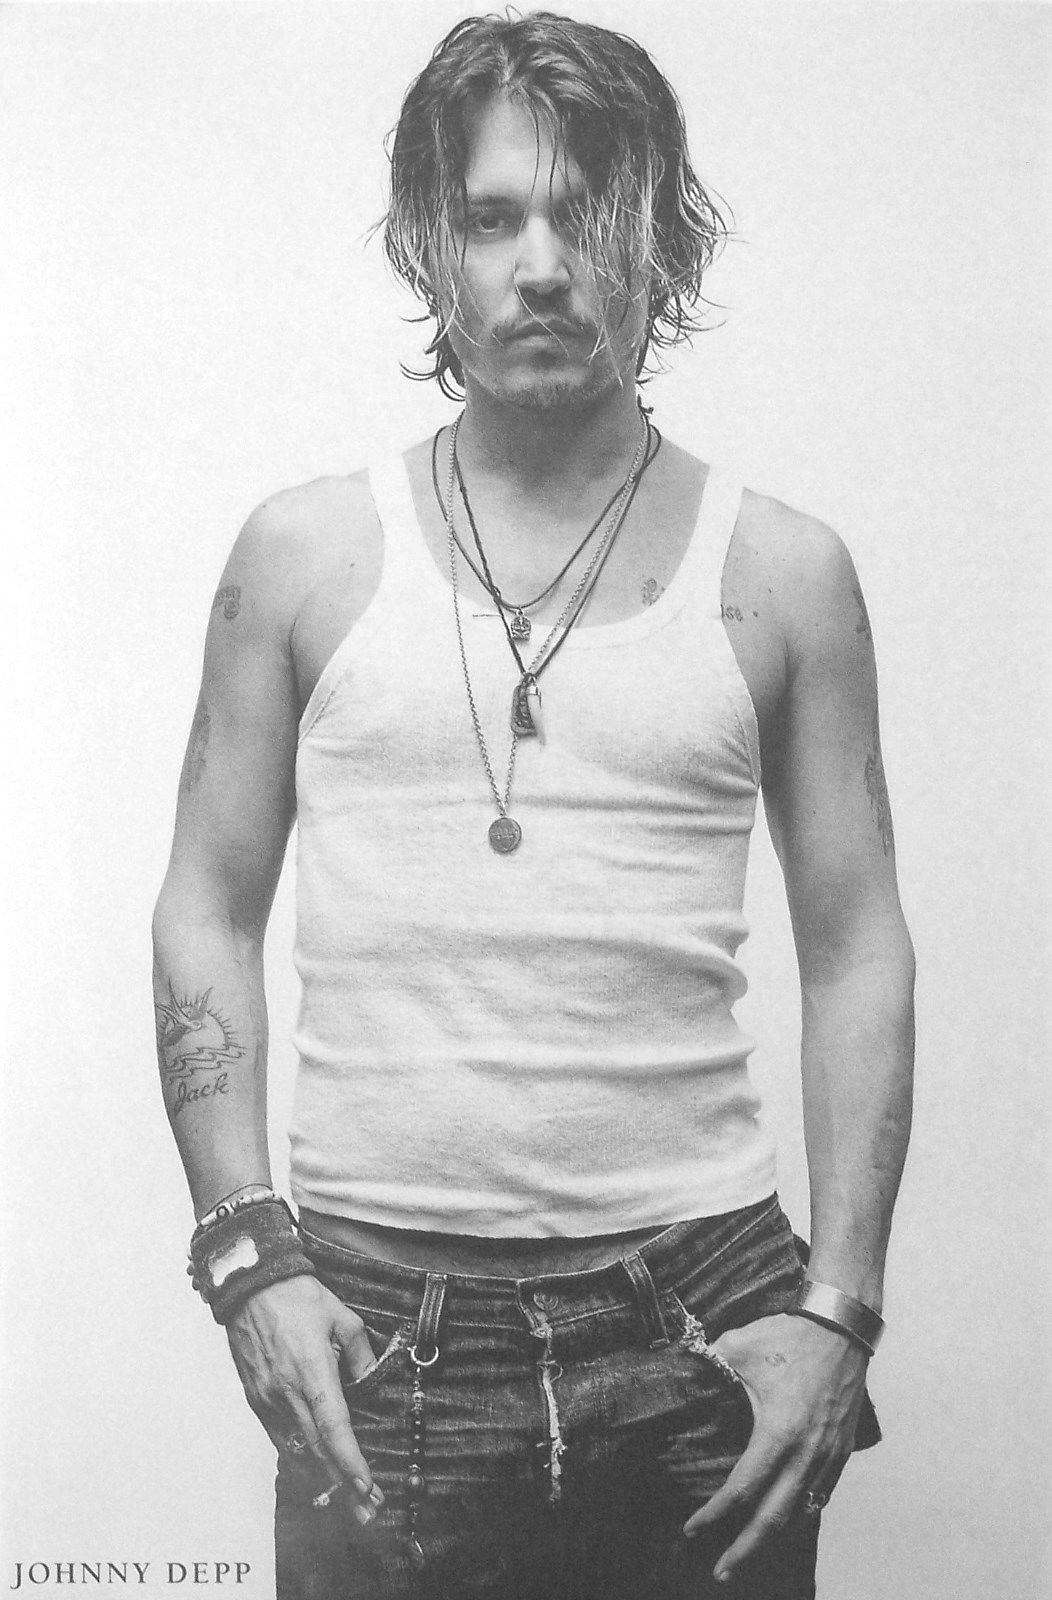 Johnny Depp Poster 23.5x35 inches Wife Beater Tank Top T-shirt Import OOP Rare